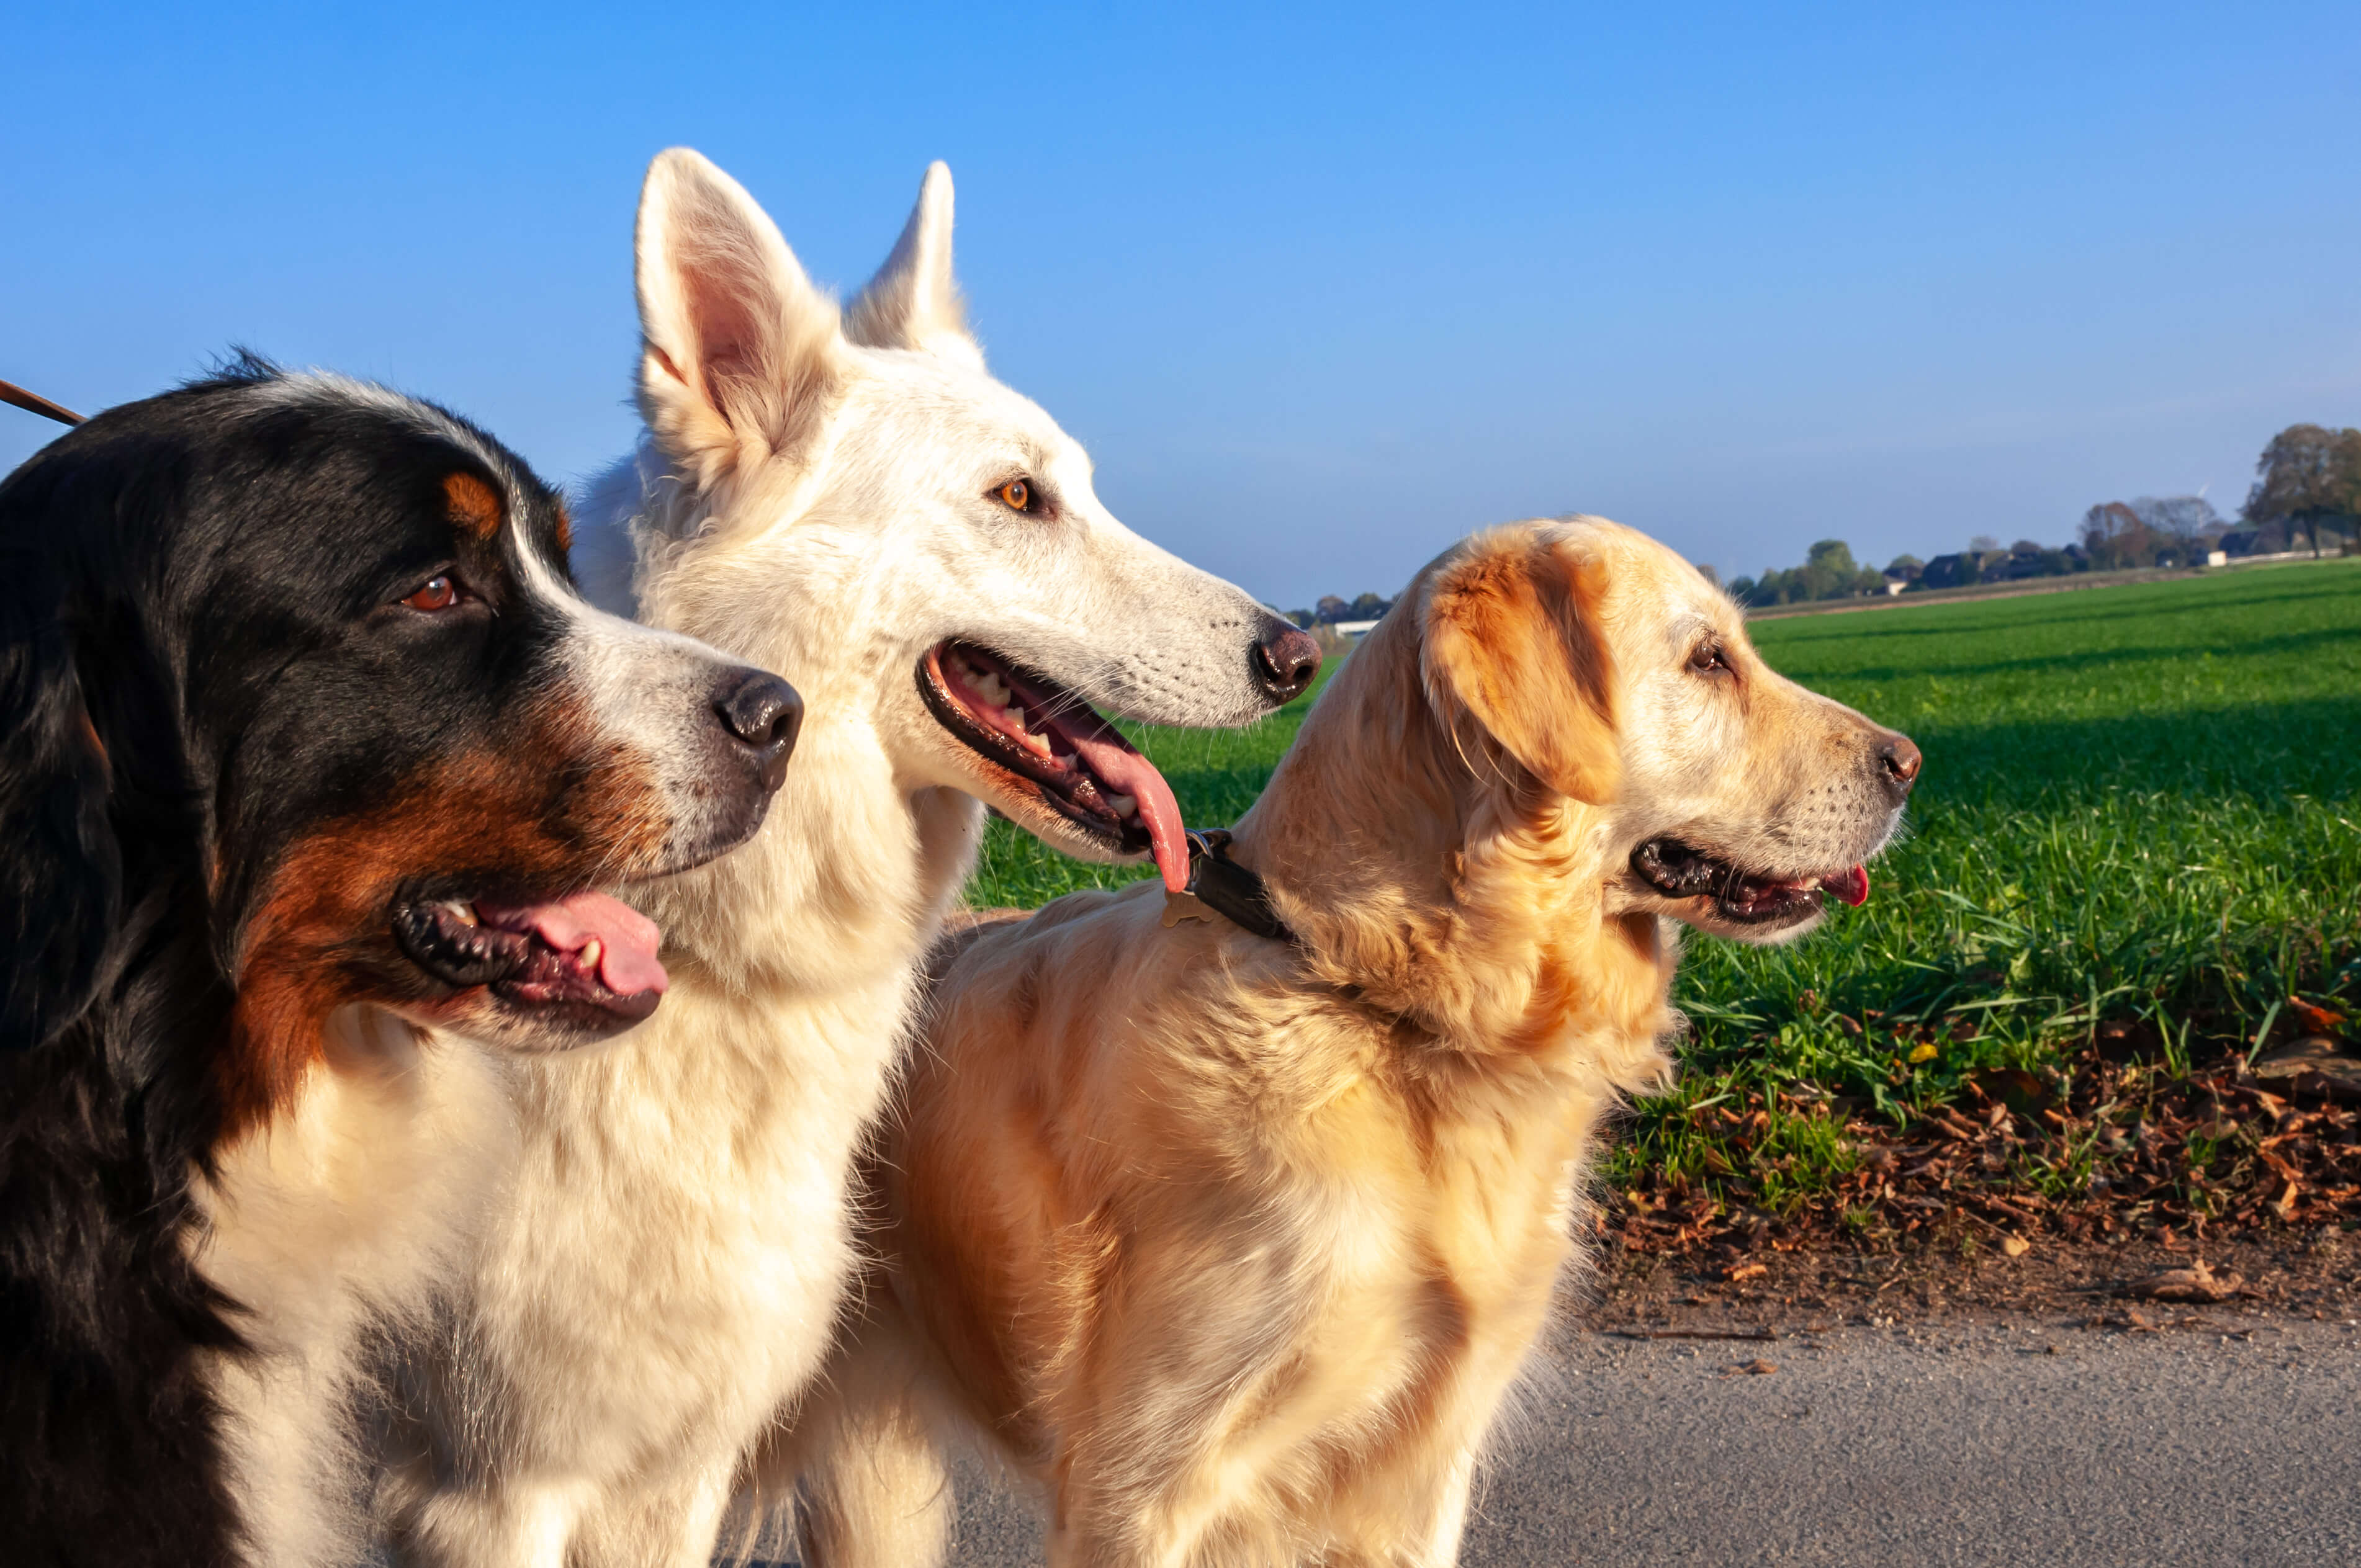 Biologically Appropriate Diet for Dogs: What is it and what are the benefits?